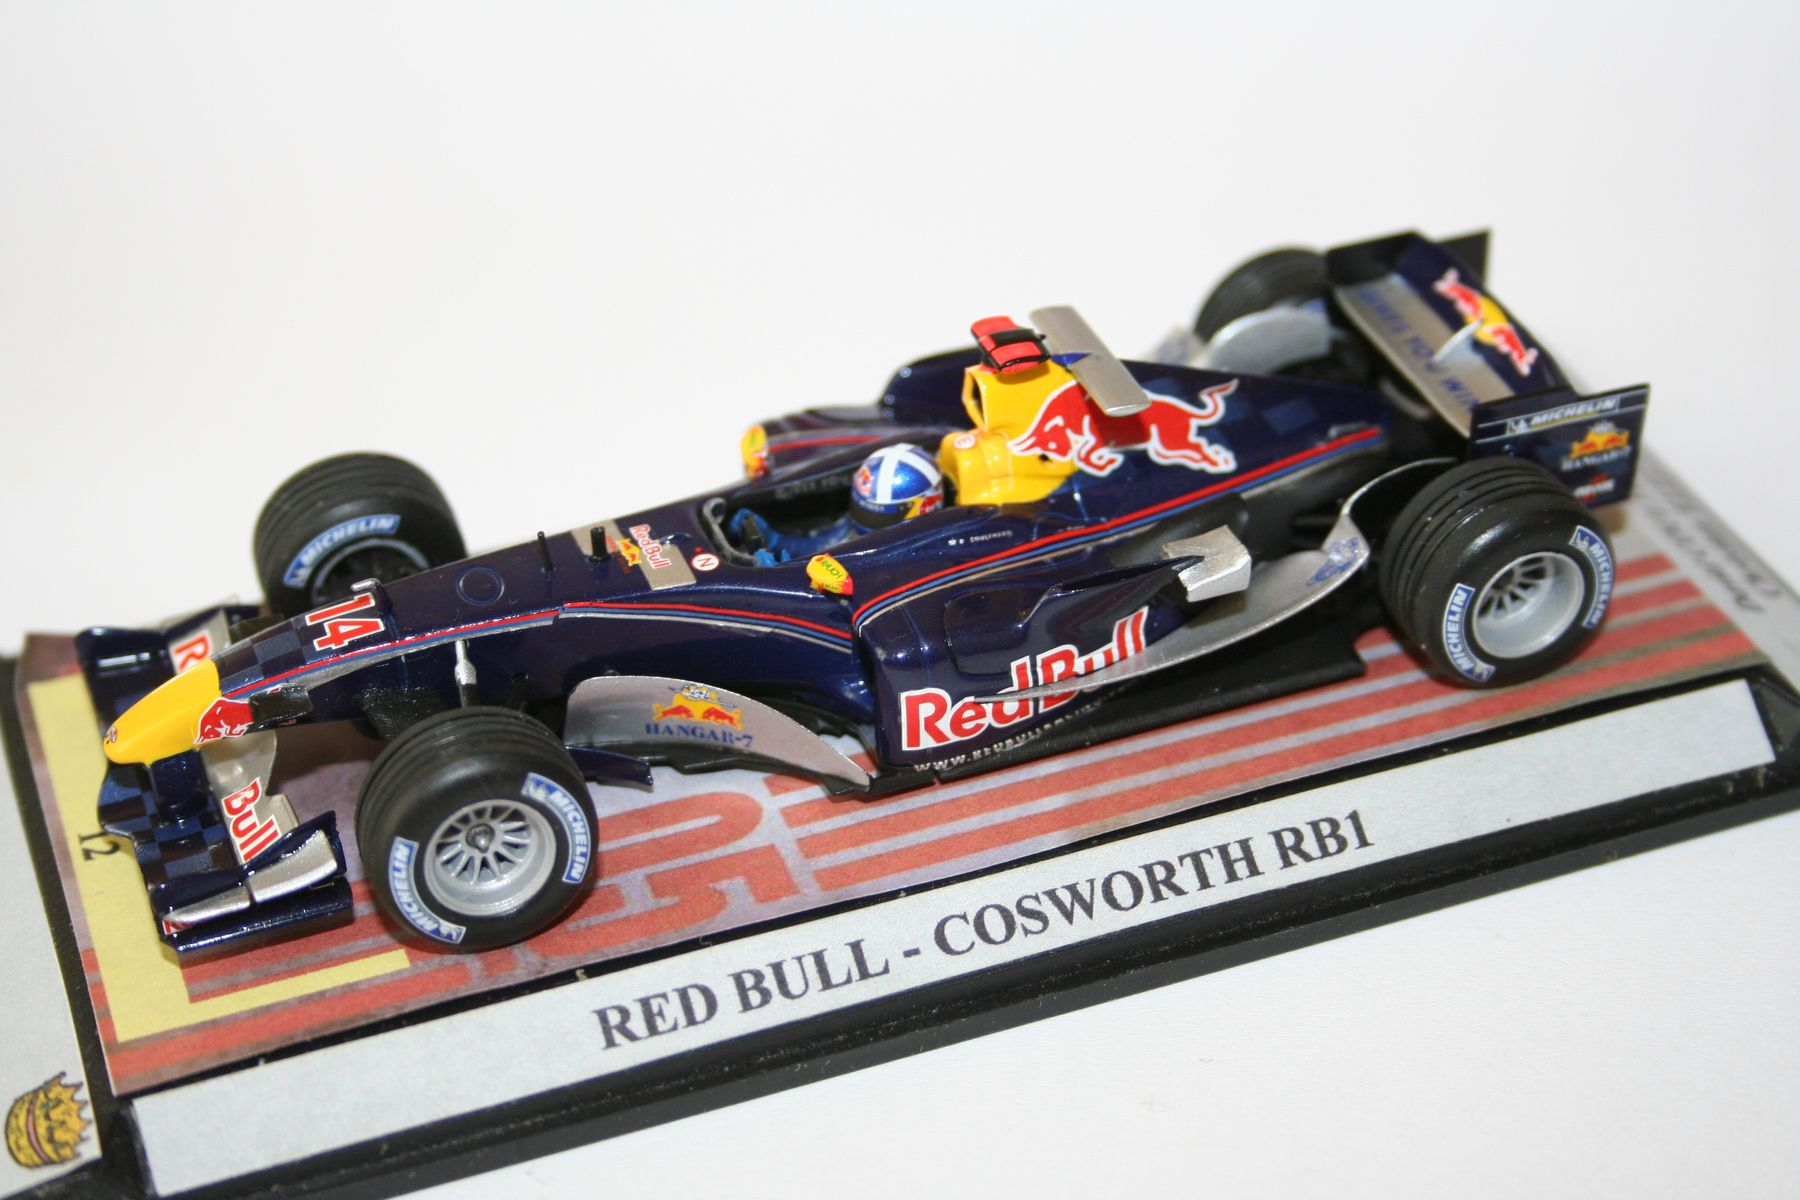 Red bull rb1 photo - 2